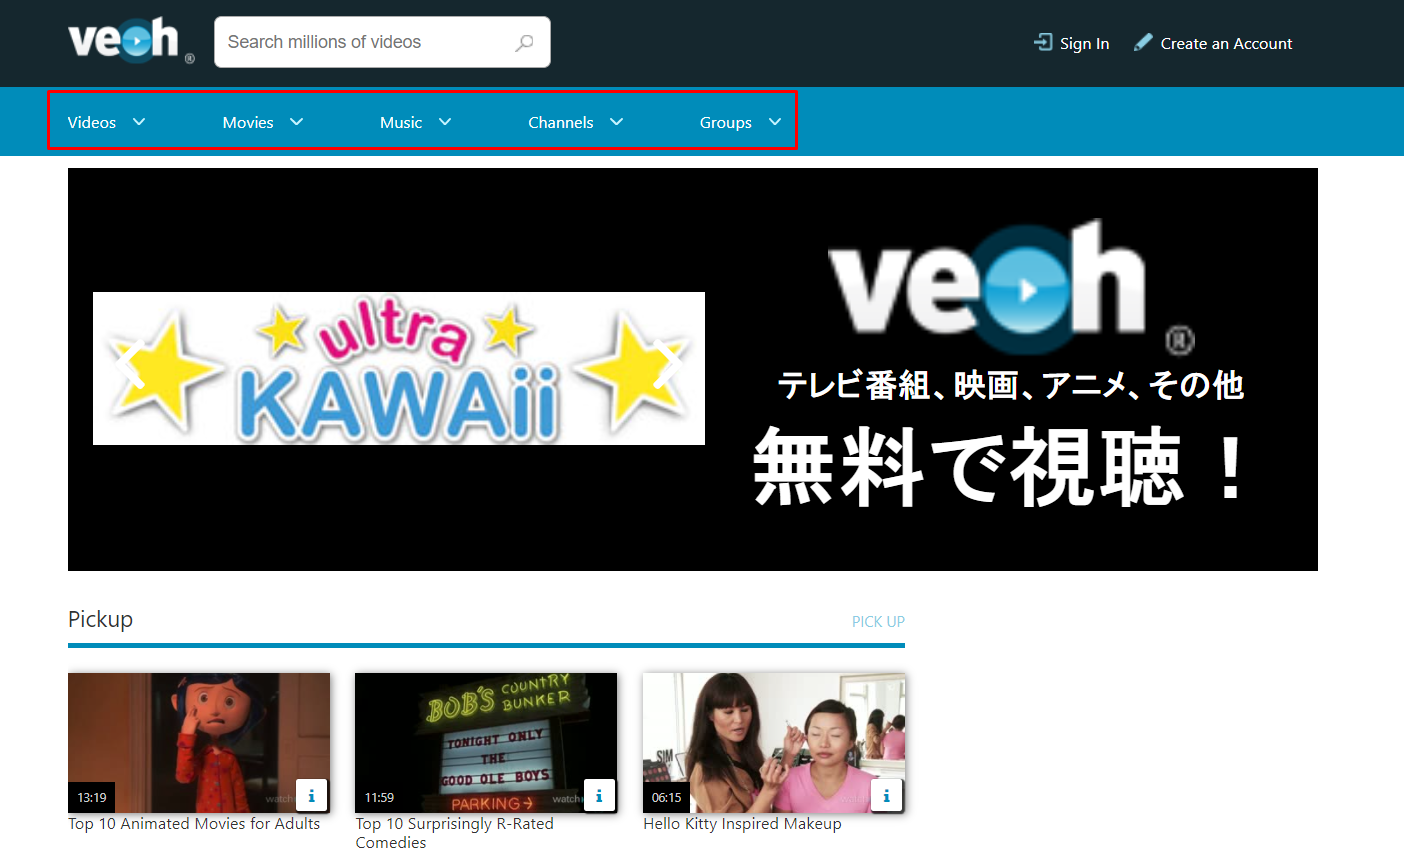 Veoh search engine home page and filters